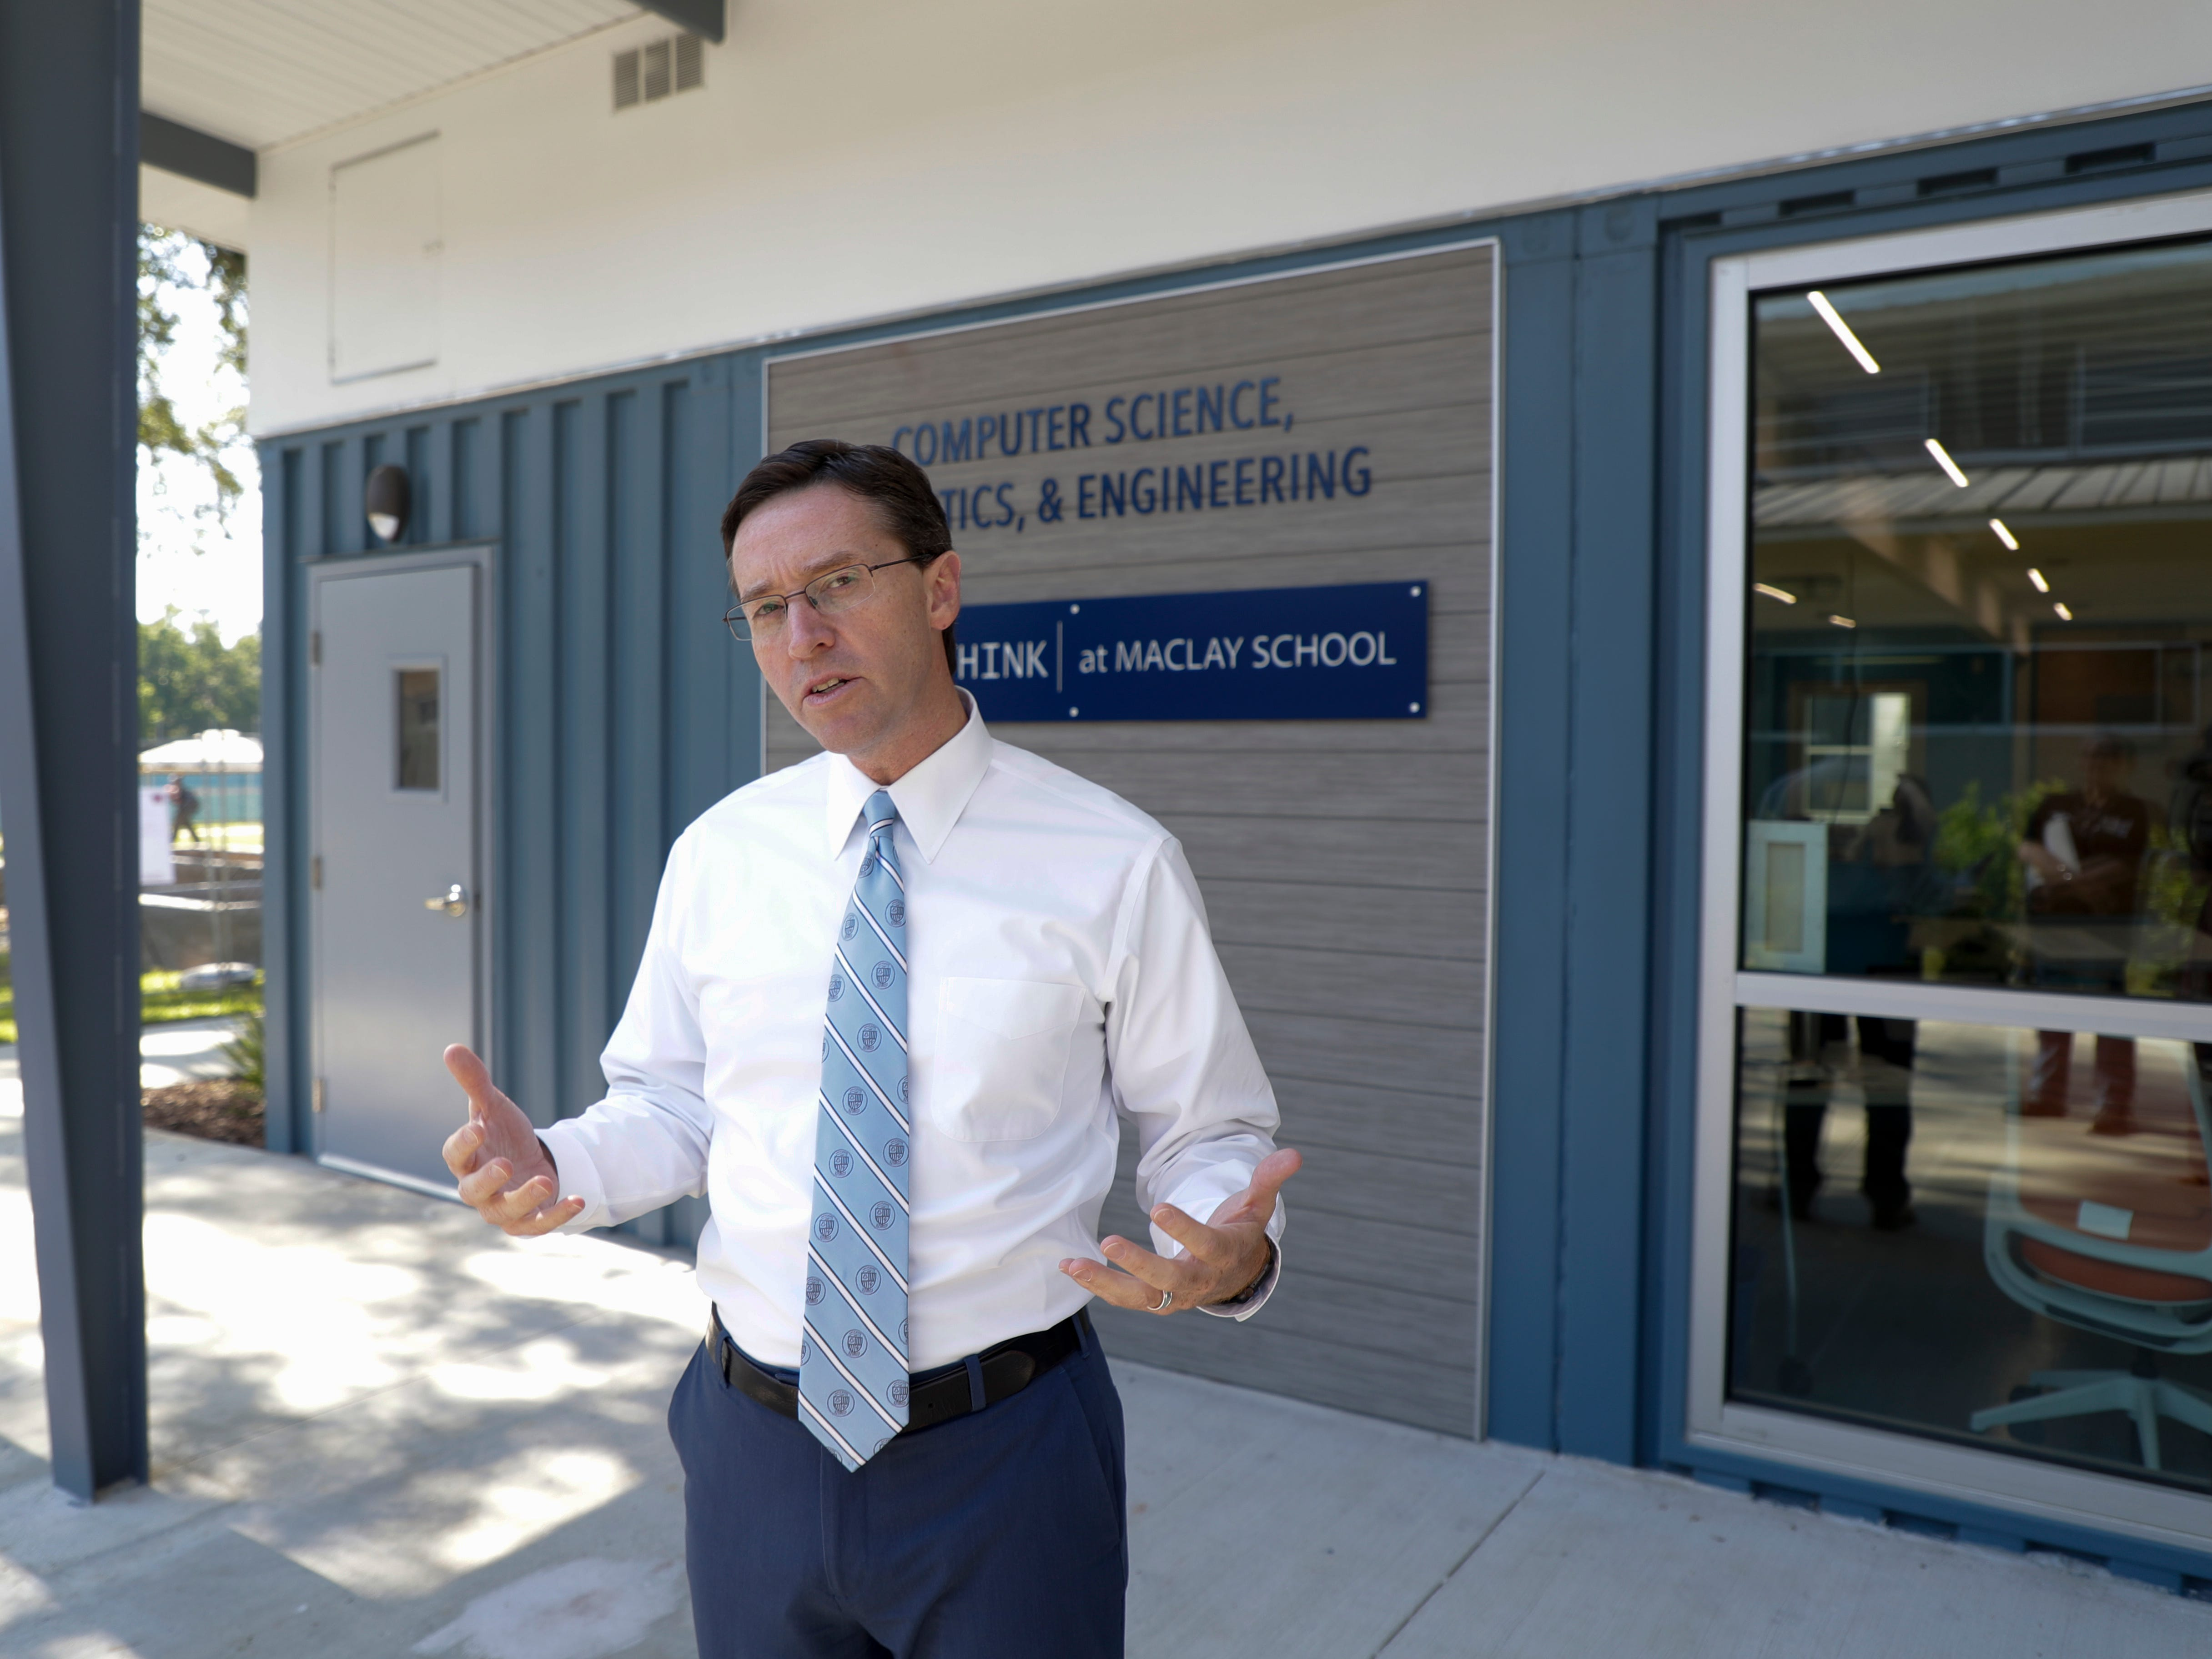 Maclay Head of School James Milford gives a rundown of the new Beck Family Research Center, a group of three classrooms made from recycled shipping containers, on the Maclay campus Wednesday, May 15, 2019.